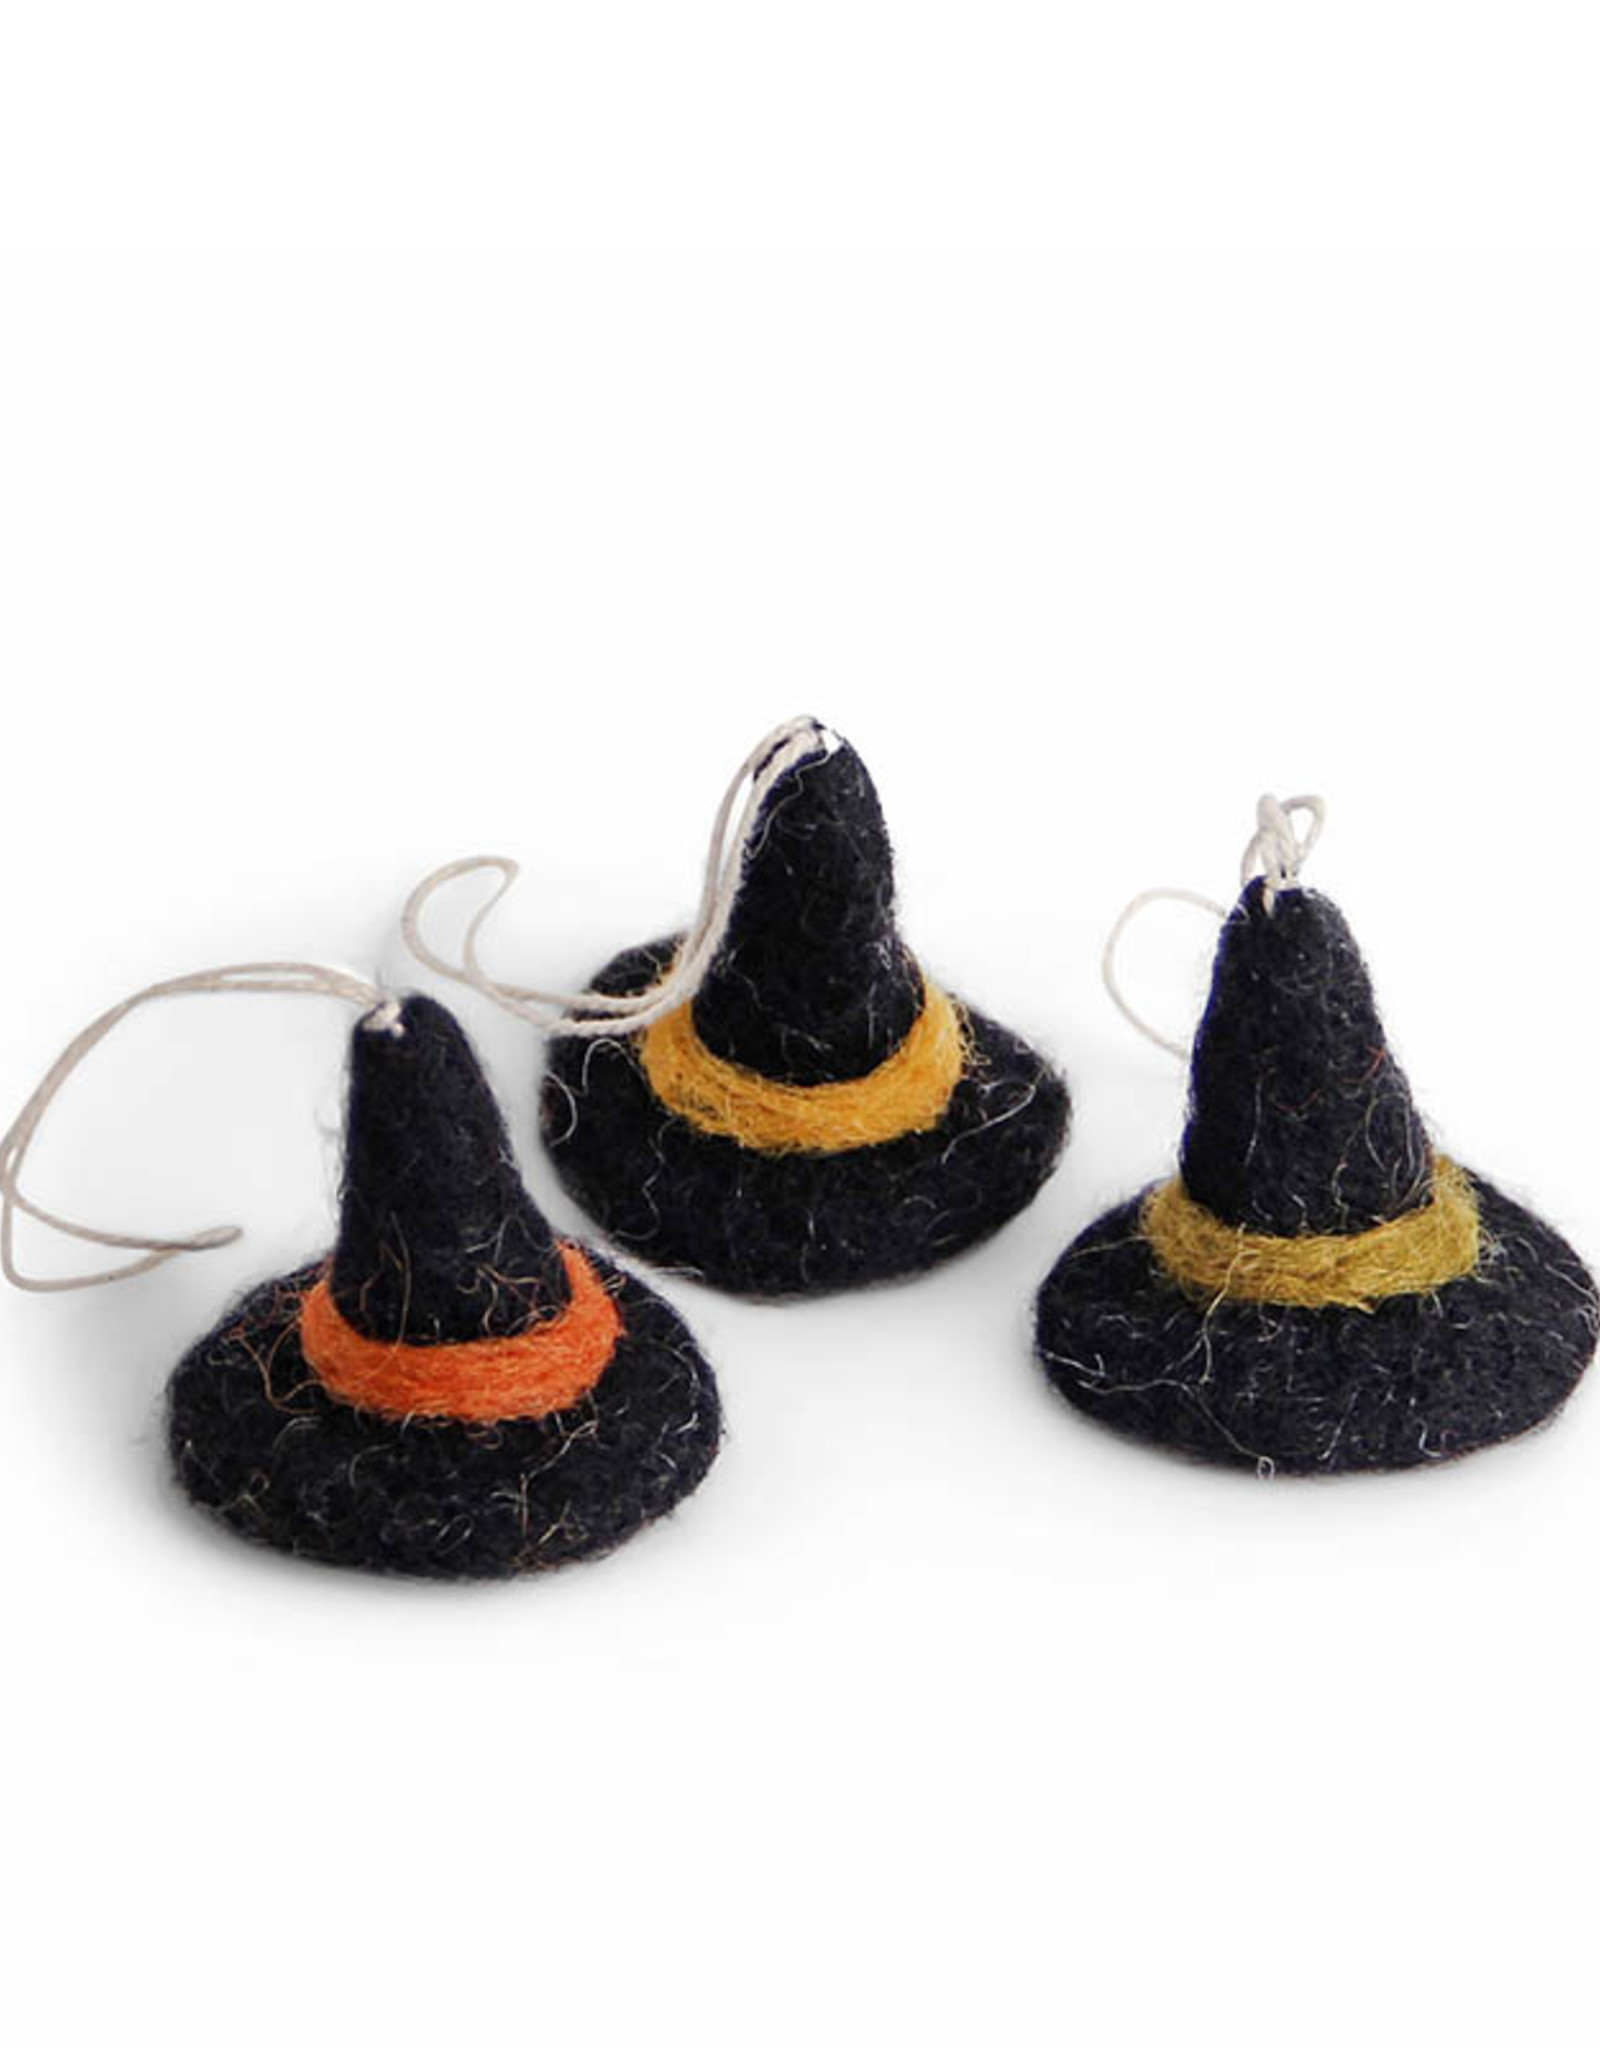 EGS EGS Ornaments - Witch Hats - Set 3